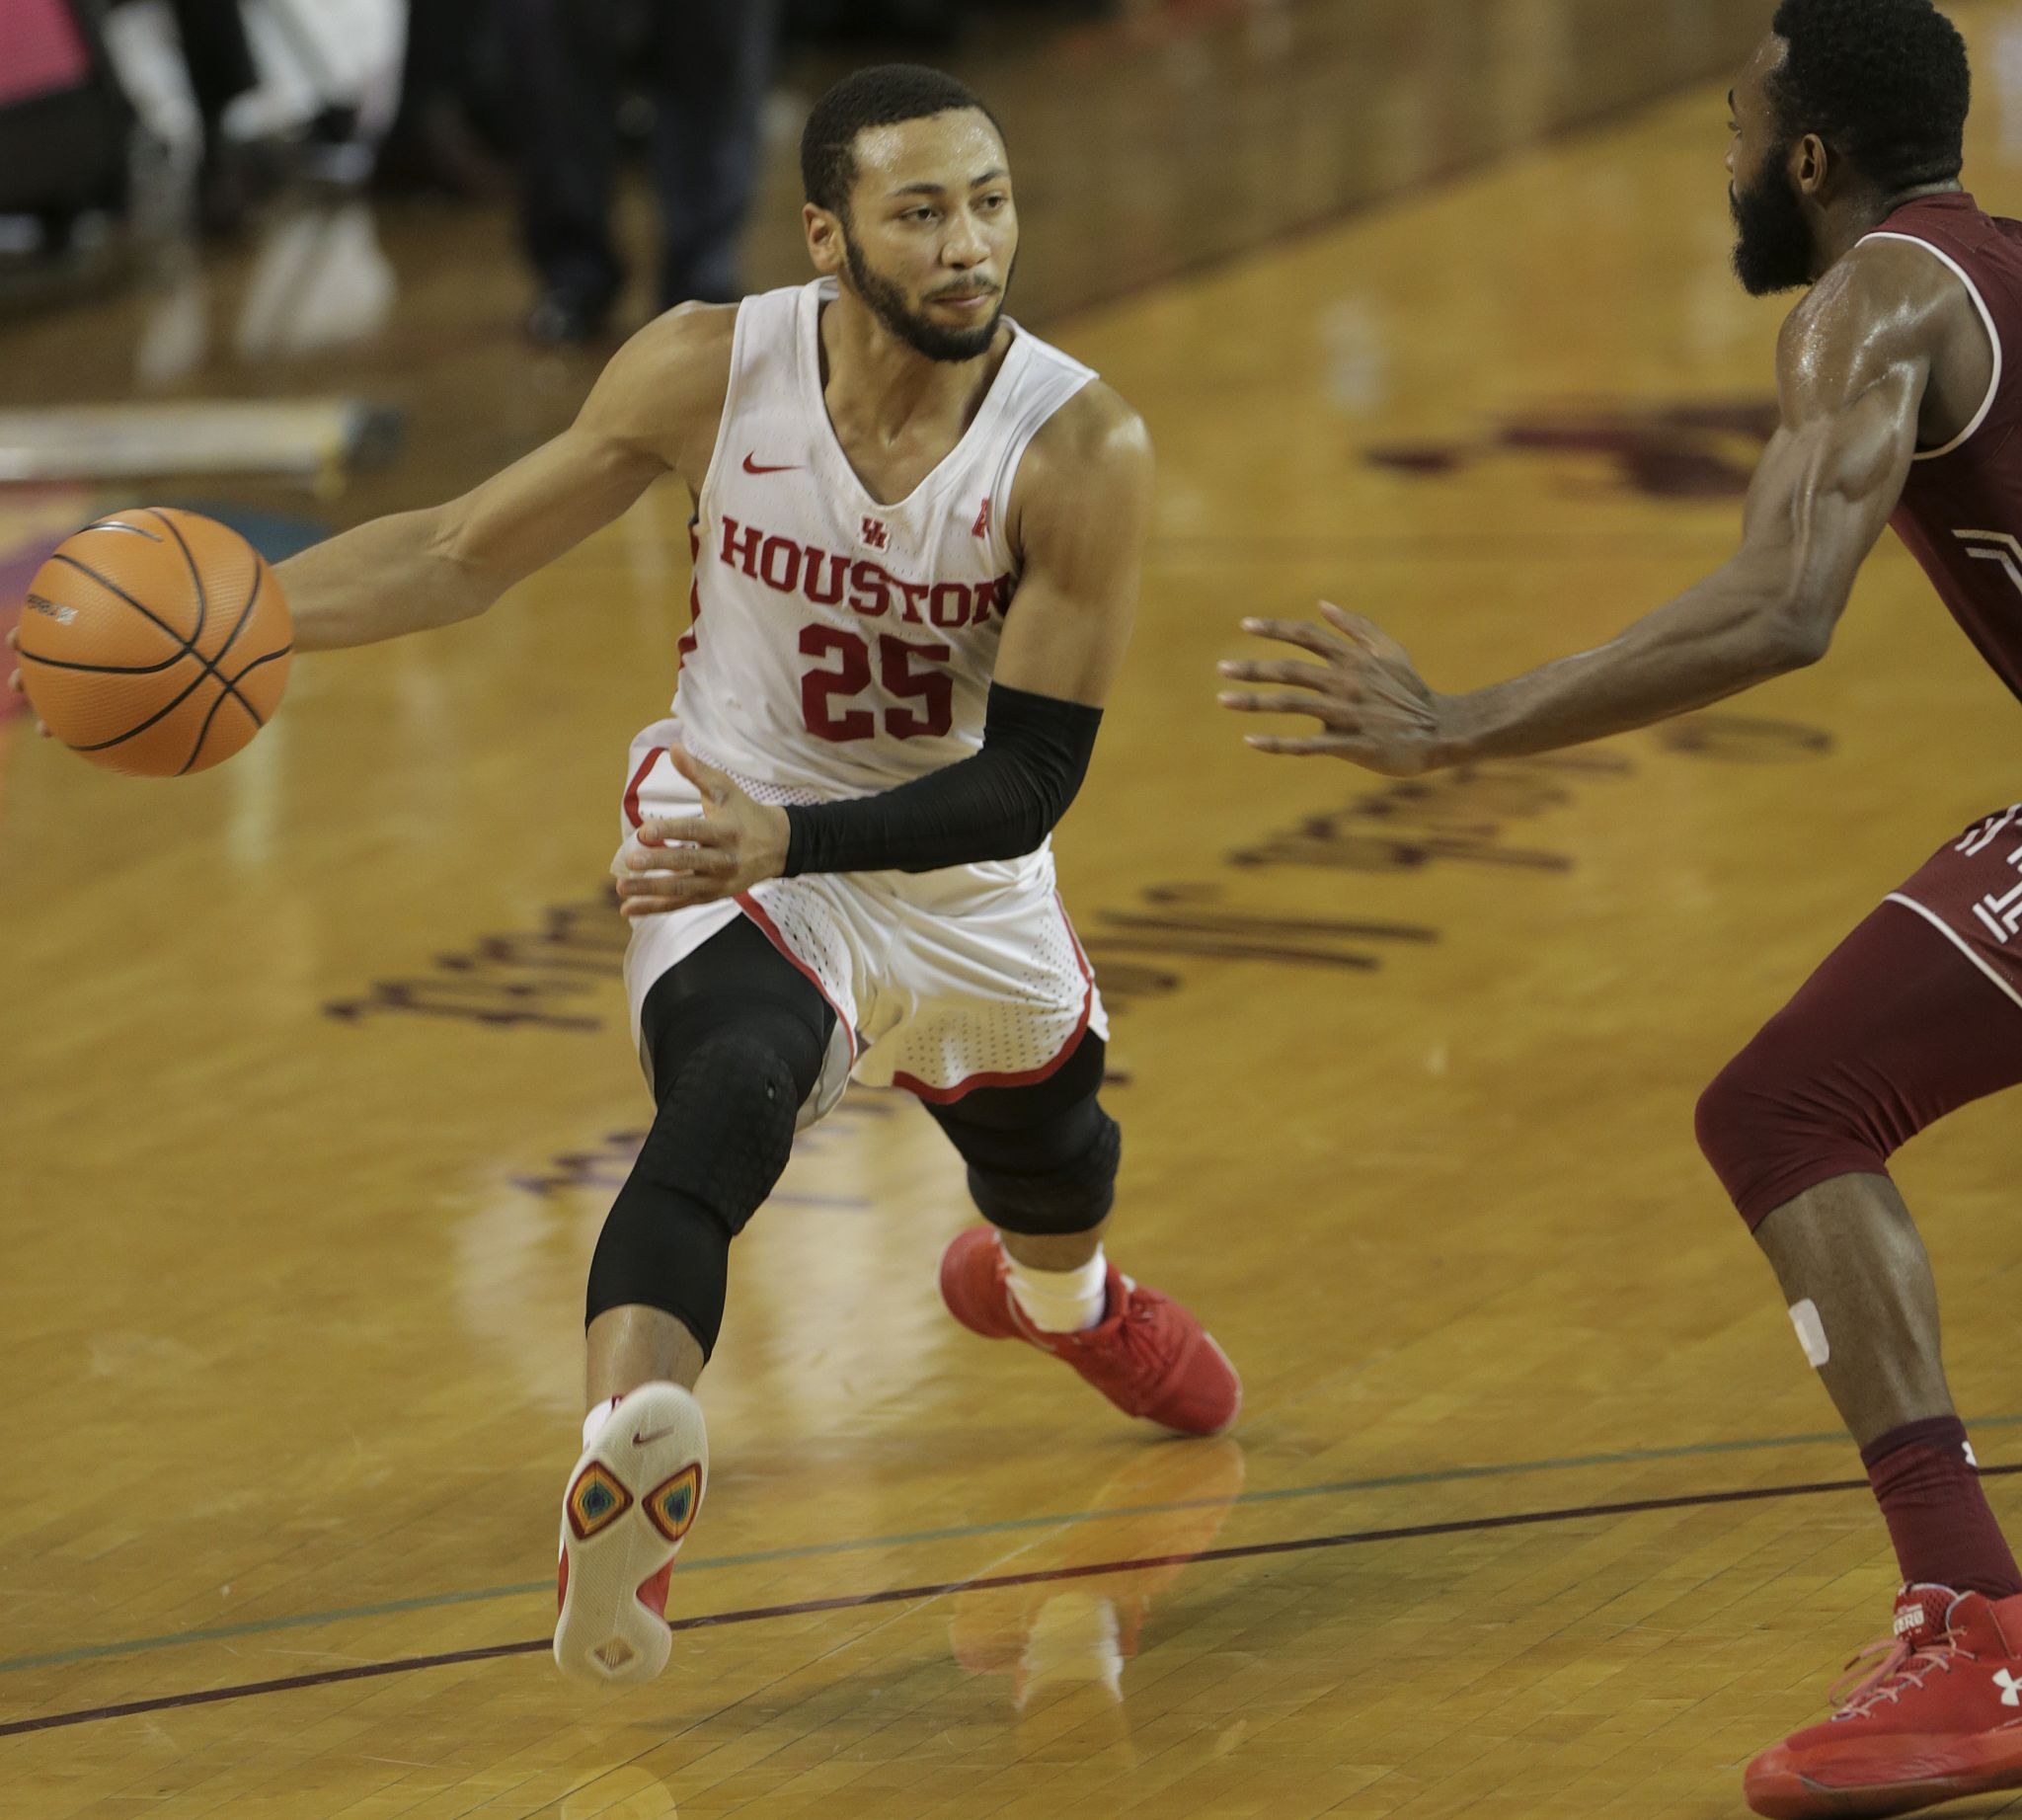 Up next for Houston men's basketball: at Temple